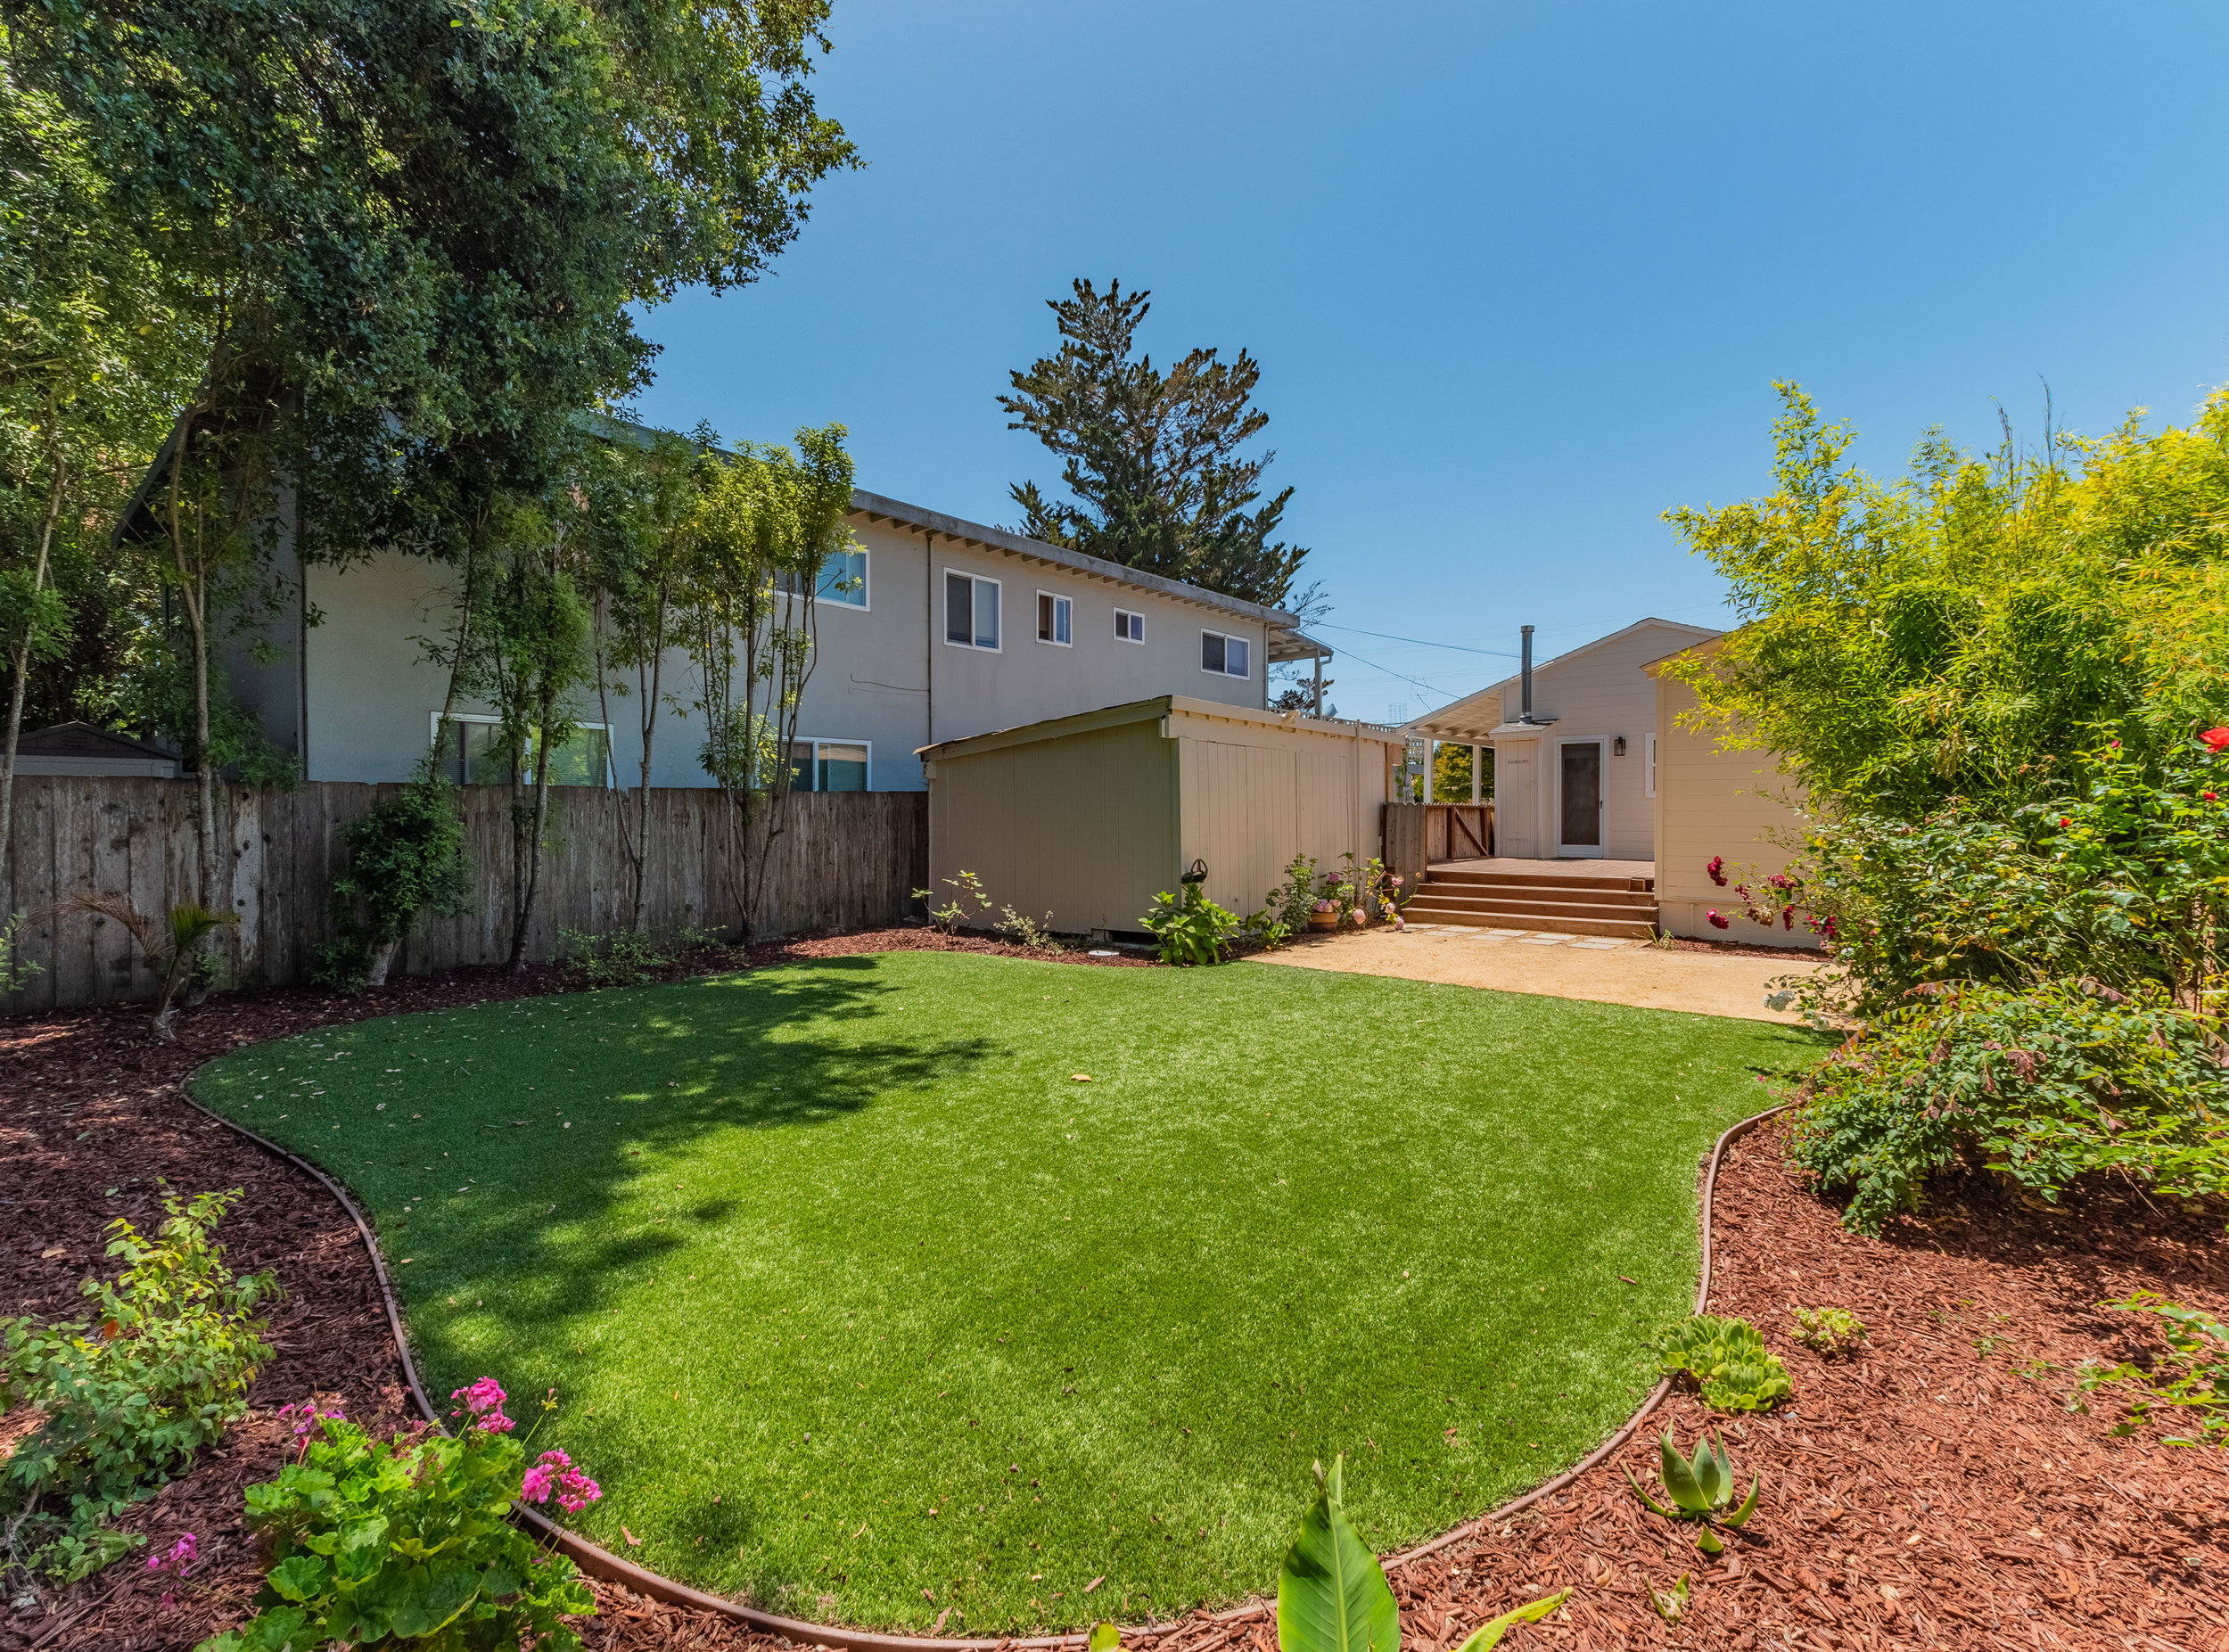 Landscaped Backyard in Capitola